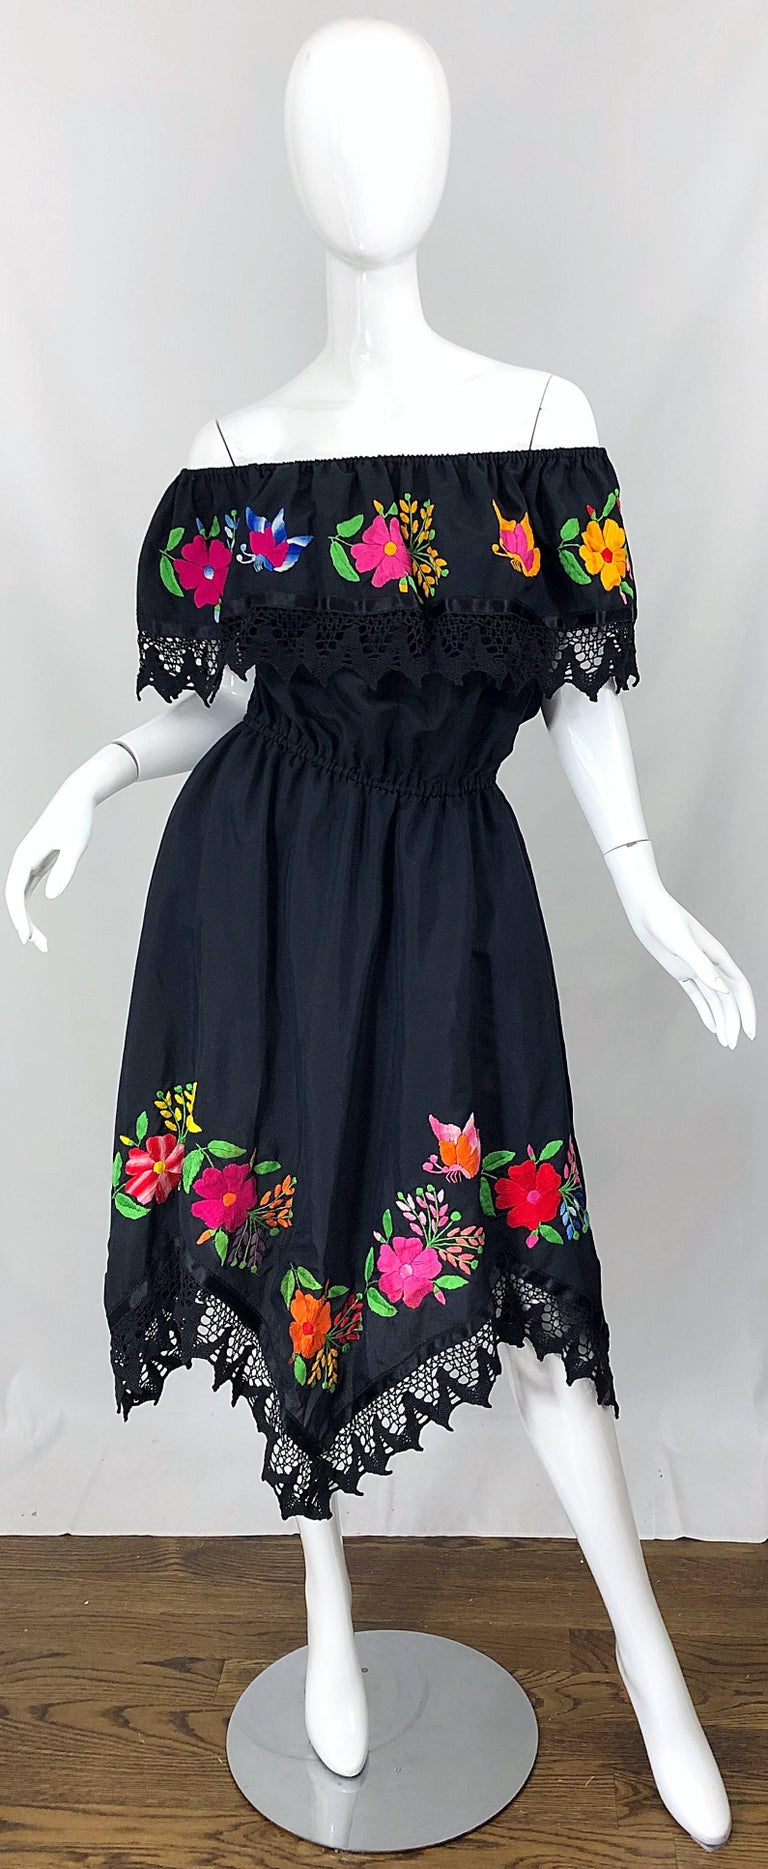 1970s Boho Chic Black Colorful Cotton Embroidered Handkerchief Hem Vintage Dress For Sale 12